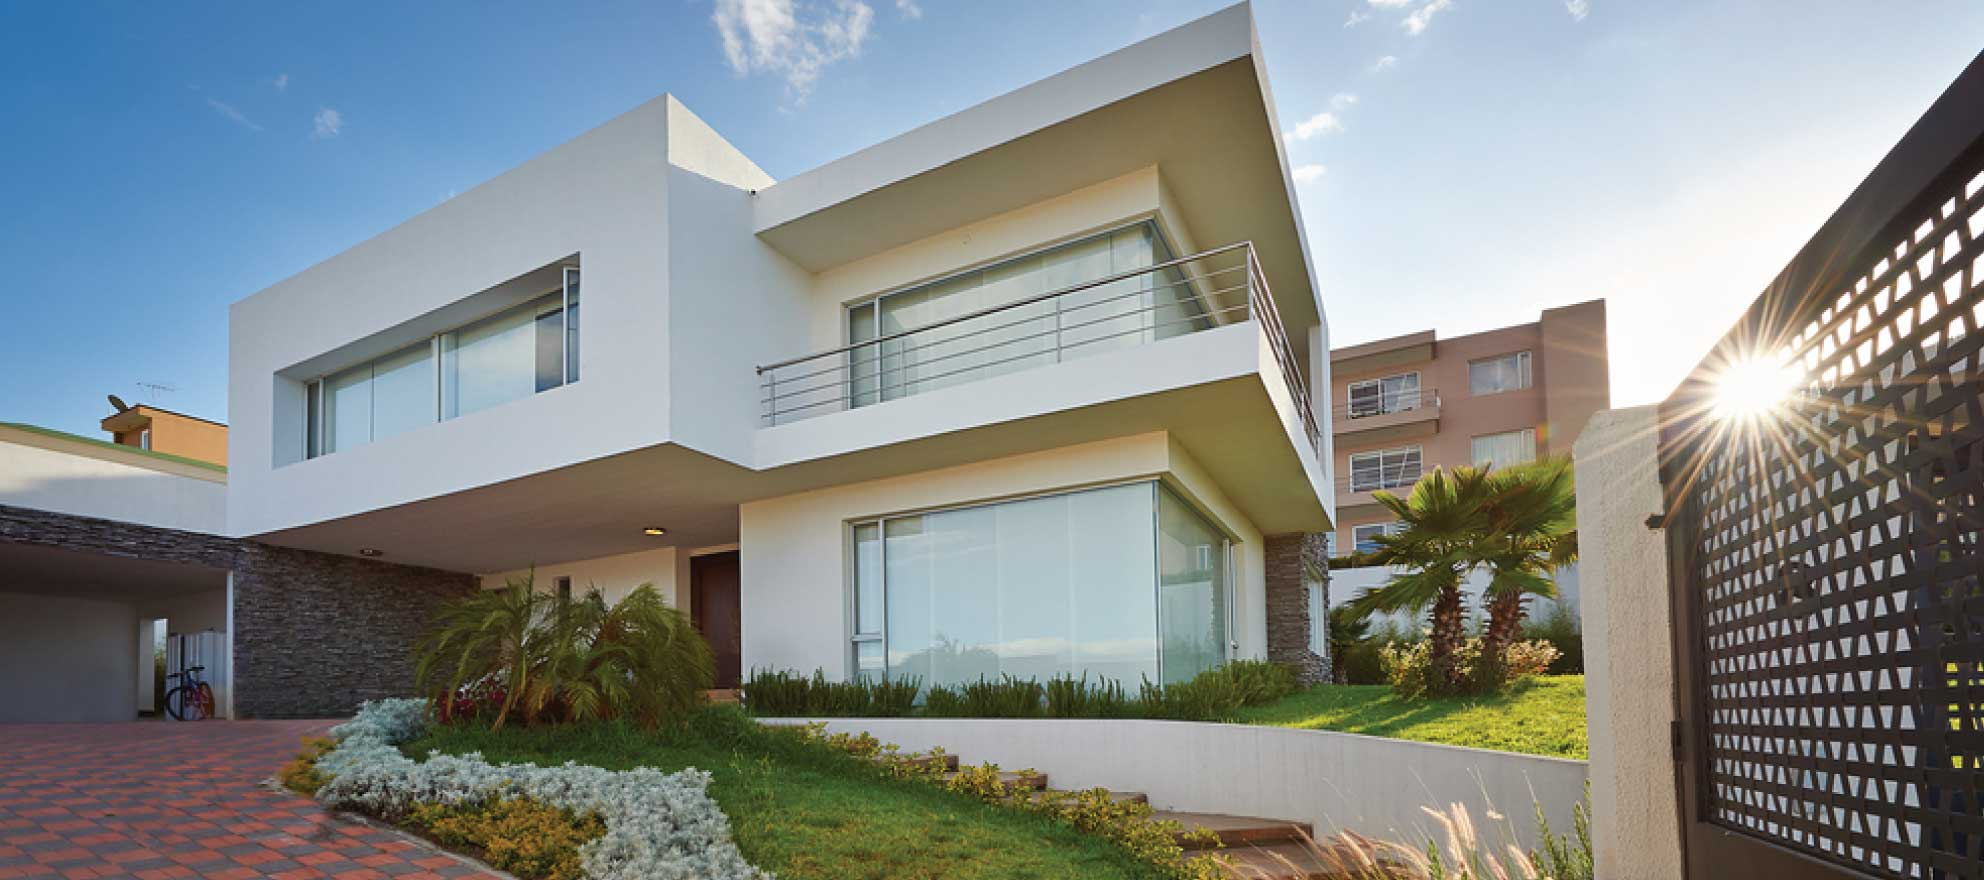 Uptick in residential real estate investing in 2015: Part 1